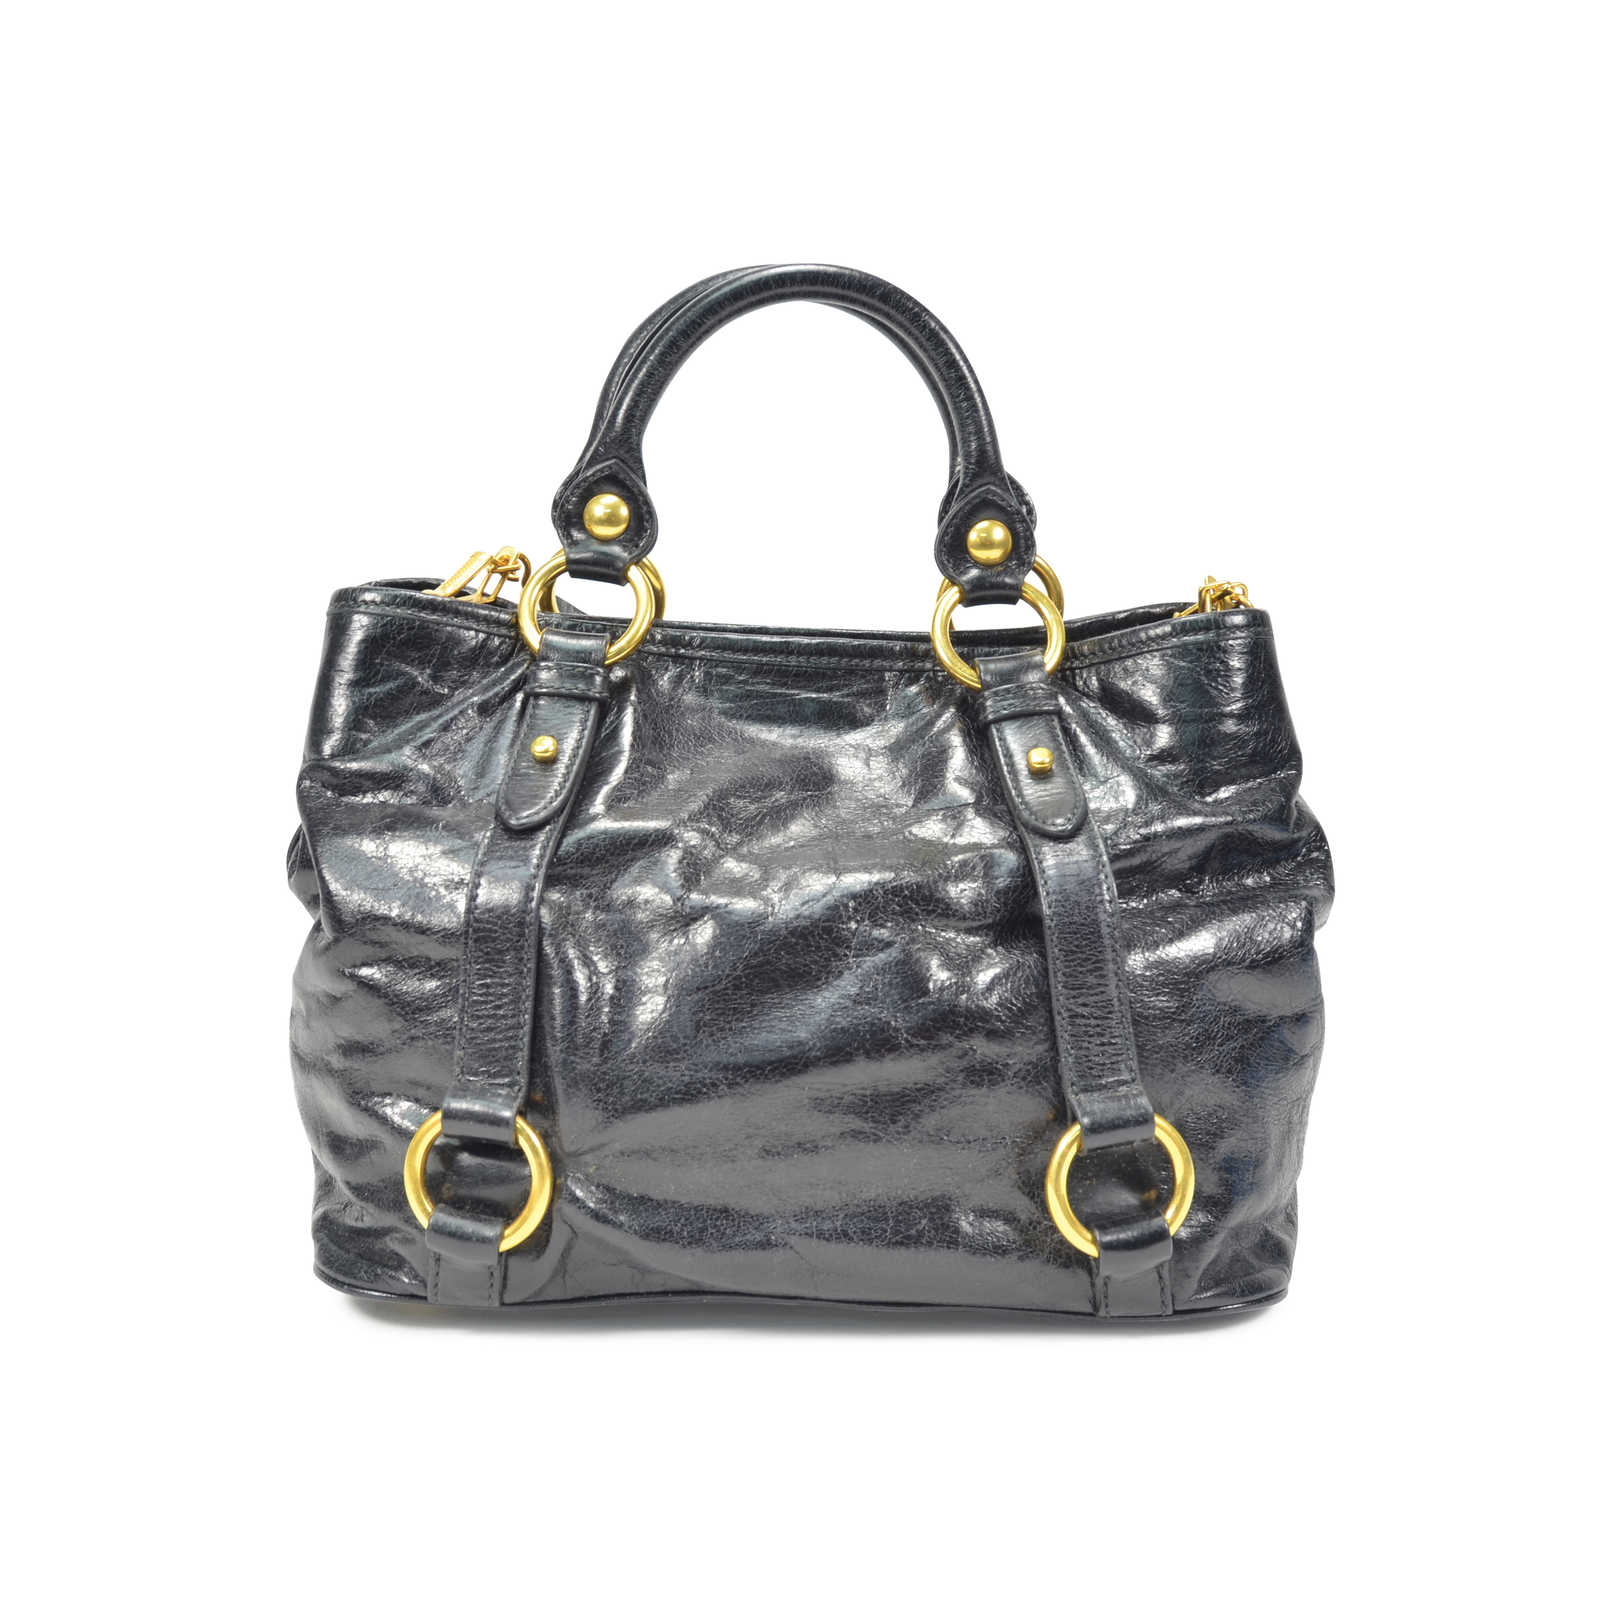 ... Authentic Second Hand Miu Miu Vitello Shine Satchel Bag (PSS-320-00007)  ... 6b0c8f24da8a9